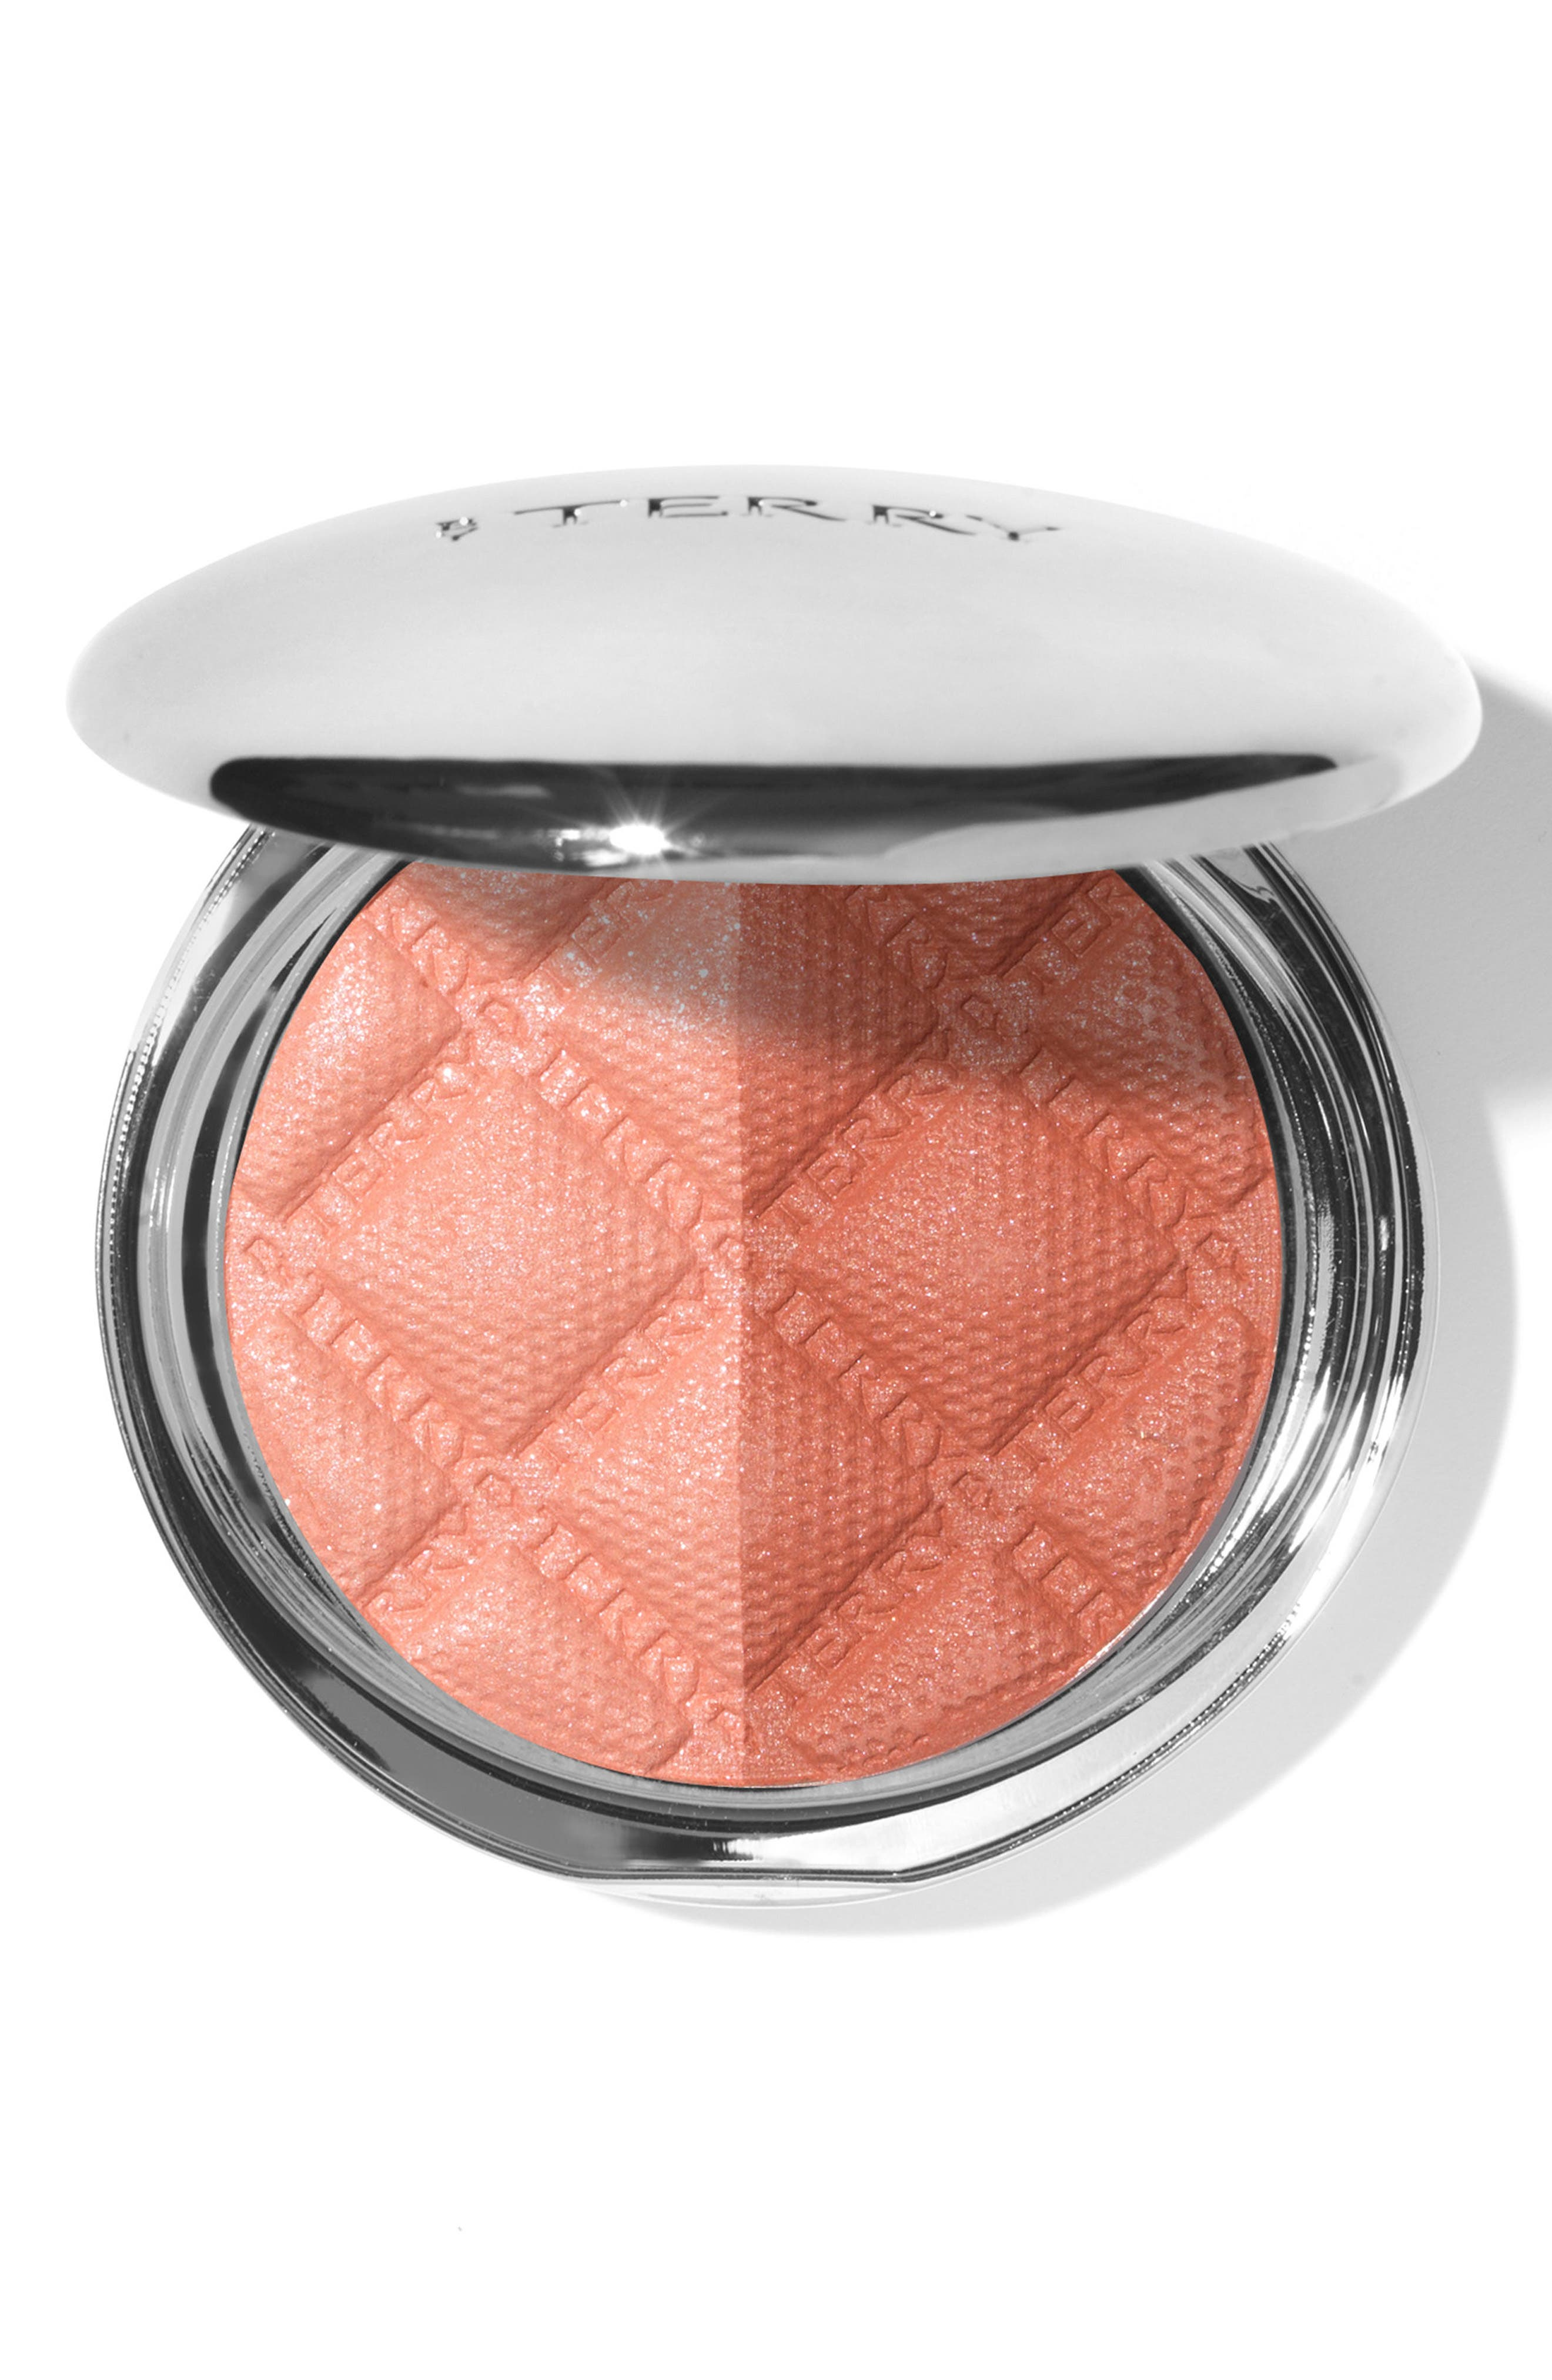 SPACE.NK.apothecary By Terry Terrybly Densiliss<sup>®</sup> Blush Contouring Compact,                             Main thumbnail 1, color,                             650